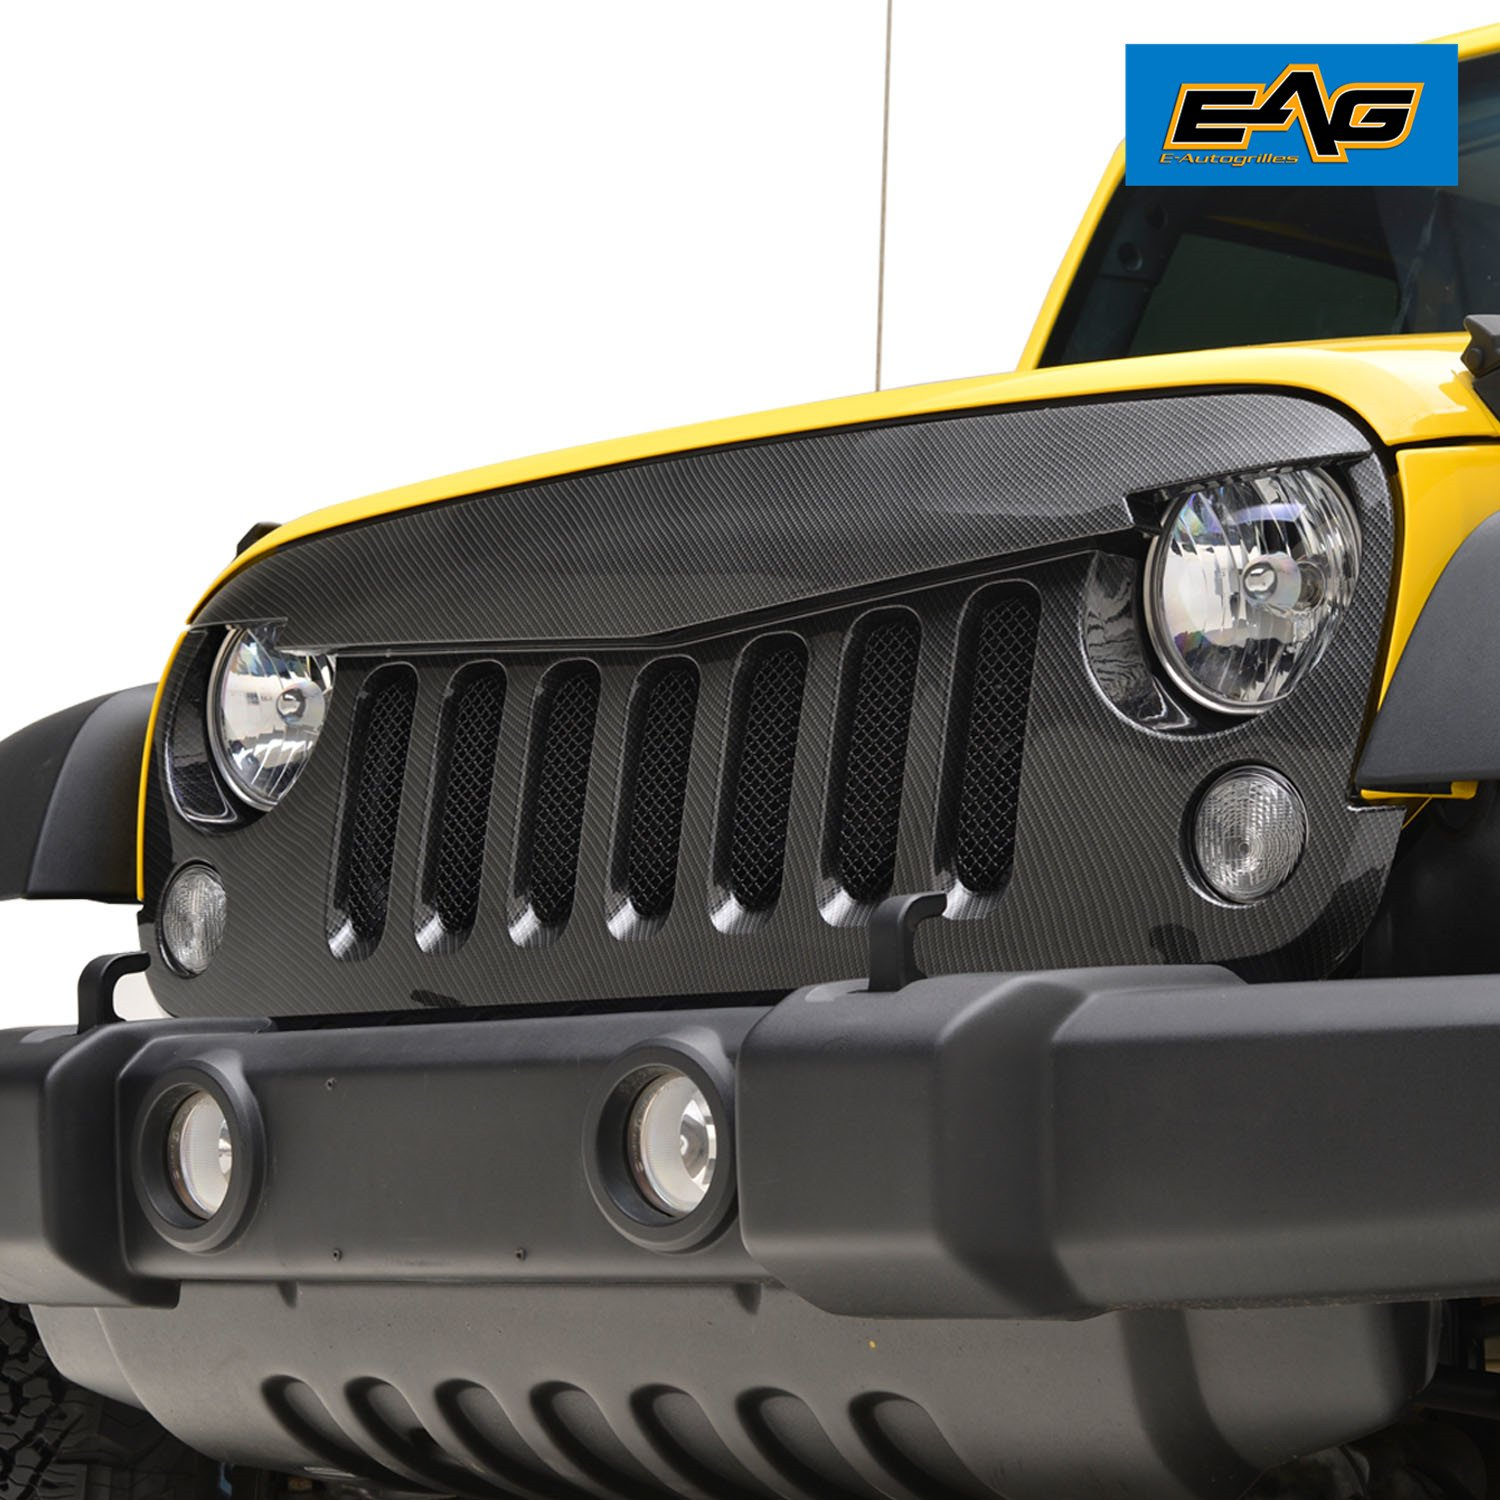 EAG 07-17 Jeep Wrangler JK Angry Bird Grille Replacement Carbon Fiber Look With Stainless Steel Insert E-Autogrilles